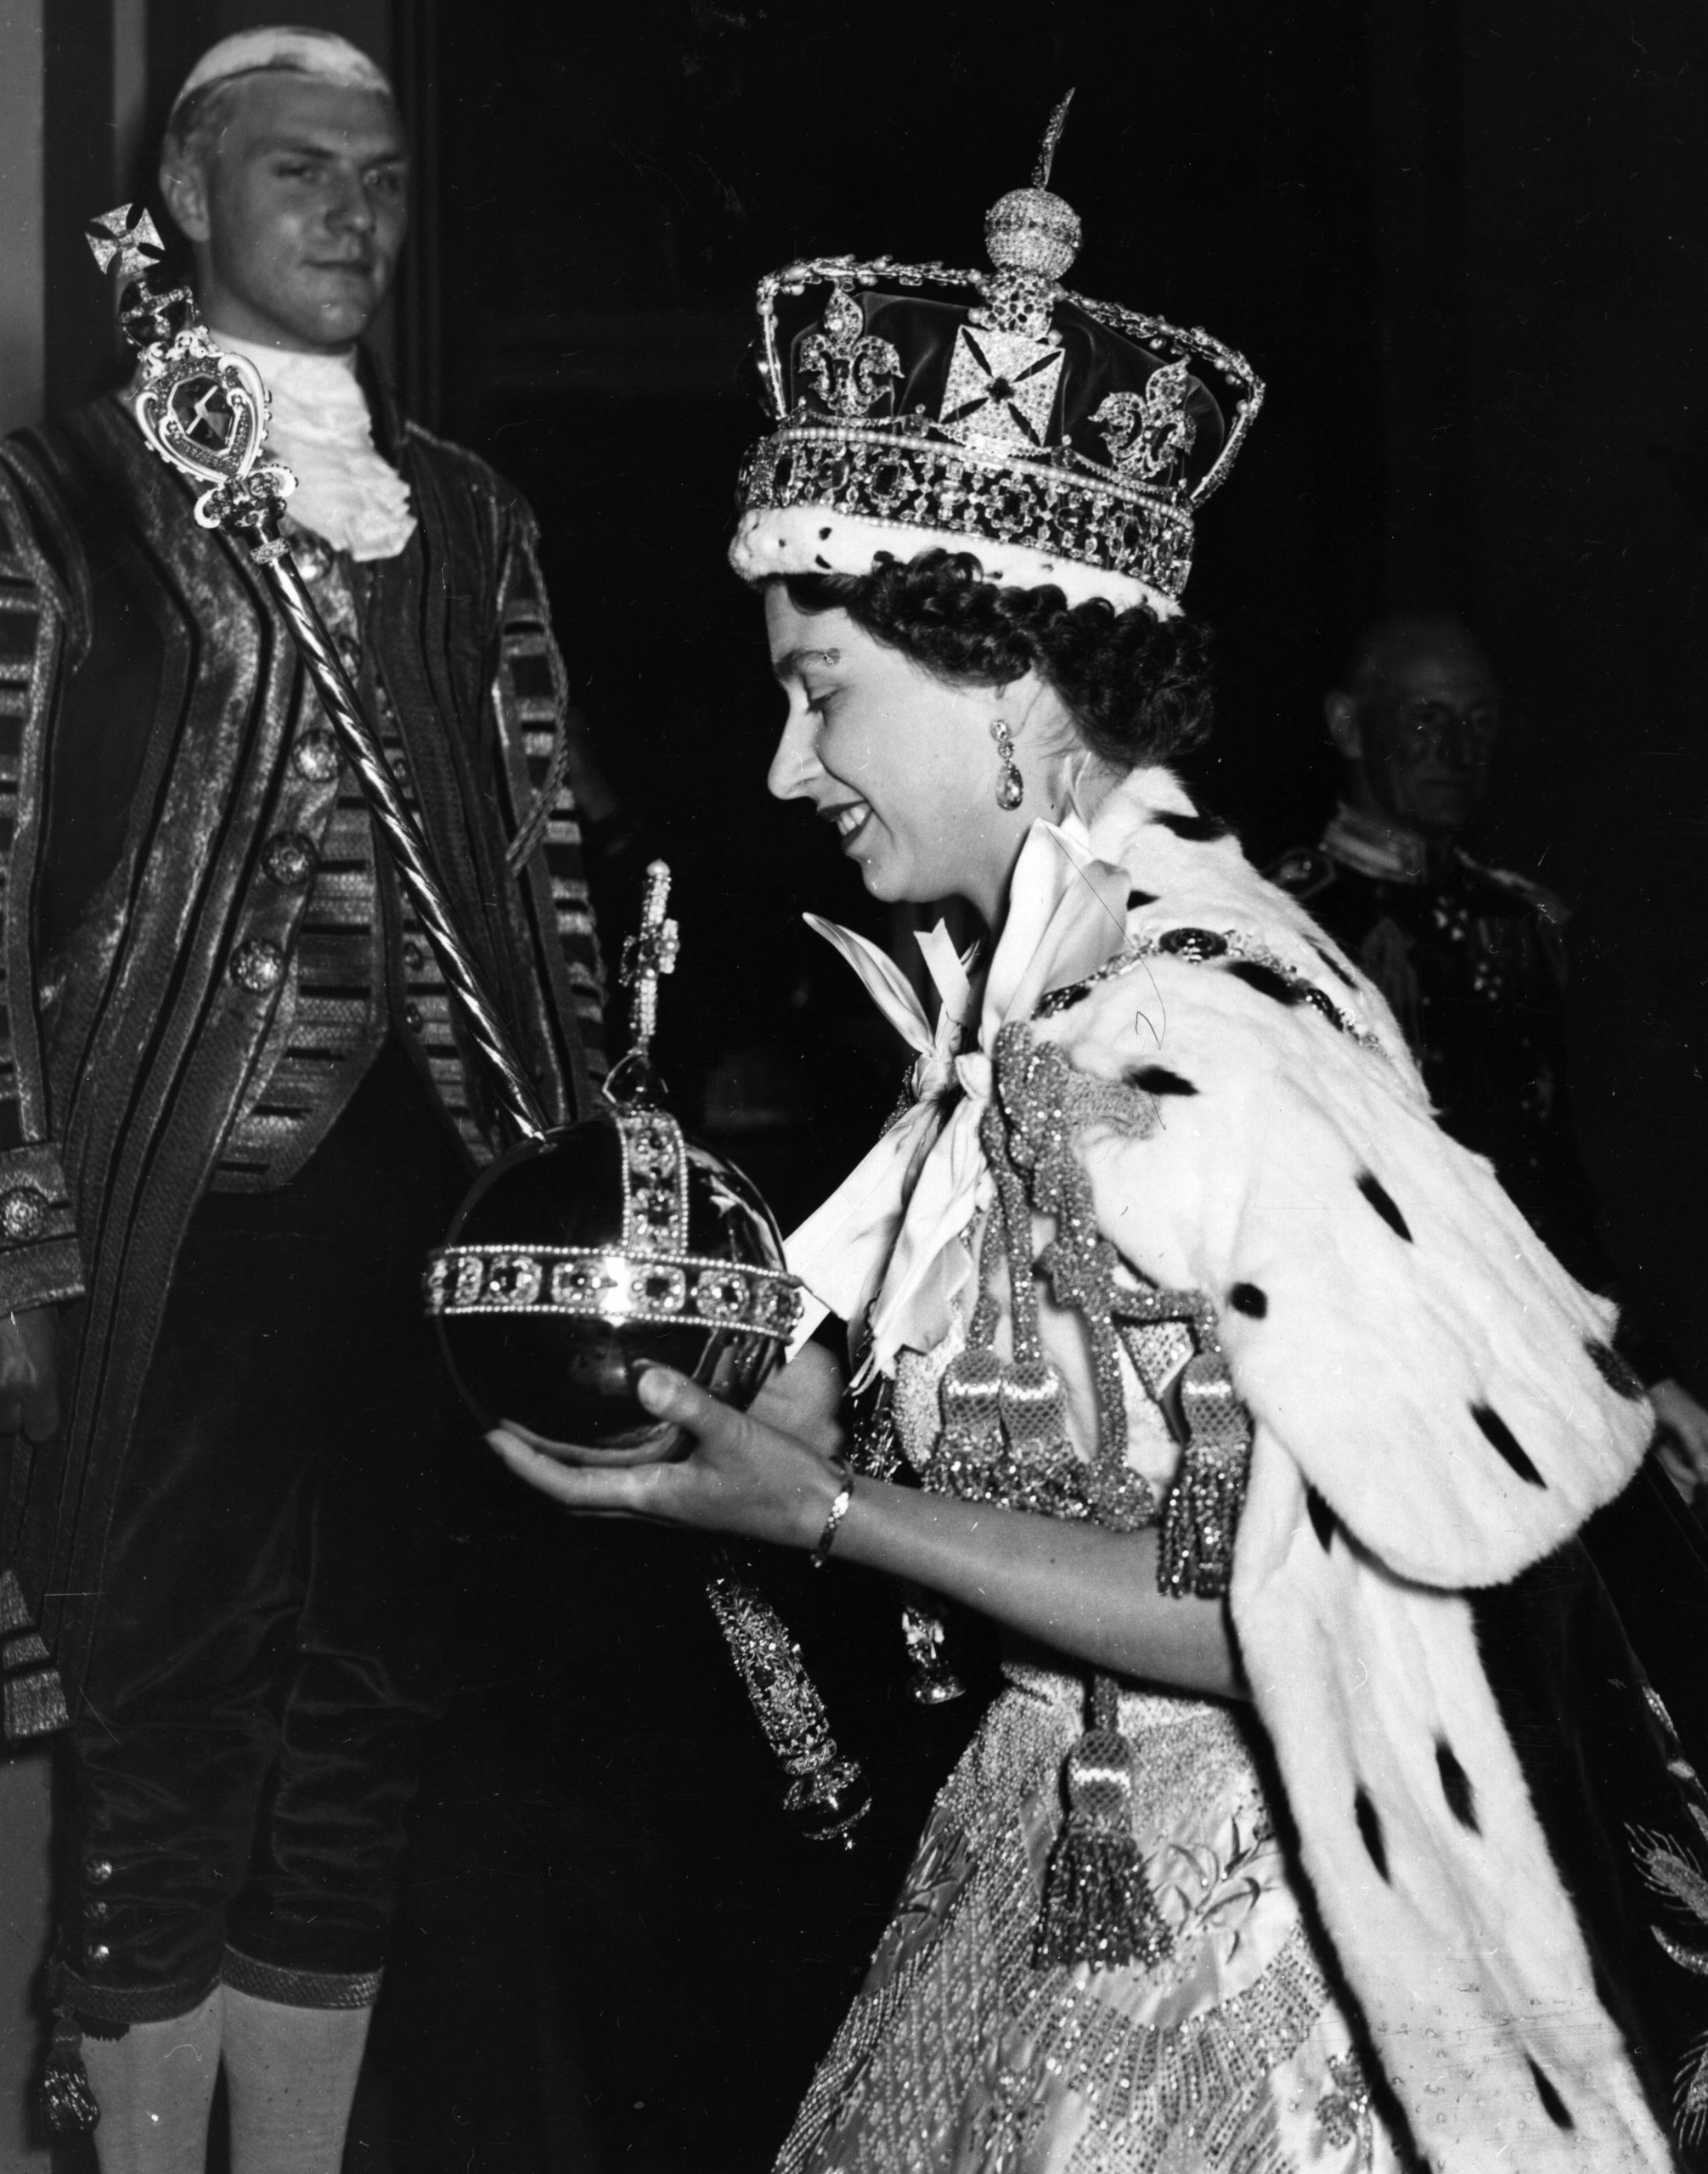 Queen Elizabeth II wearing the Imperial state Crown and carrying the Orb and sceptre, leaving the state coach and entering Buckingham Palace, after the coronation on June 2, 1953.